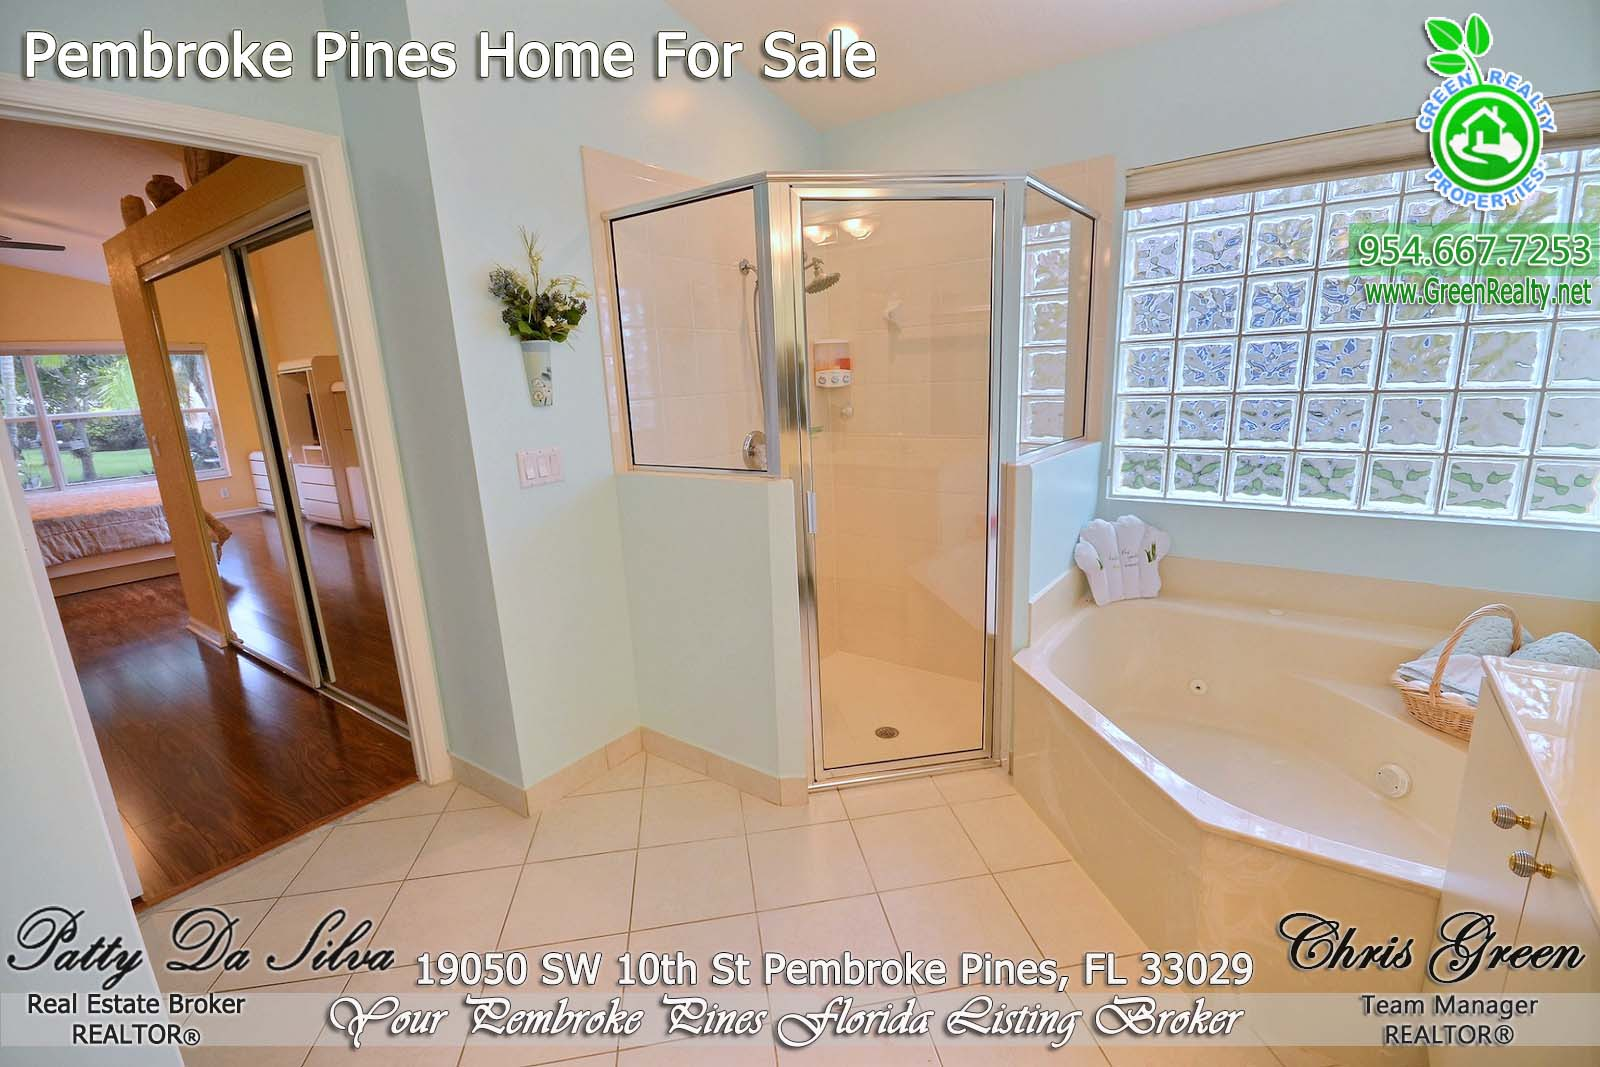 22.1 Homes For Sale in Pembroke Pines (2)